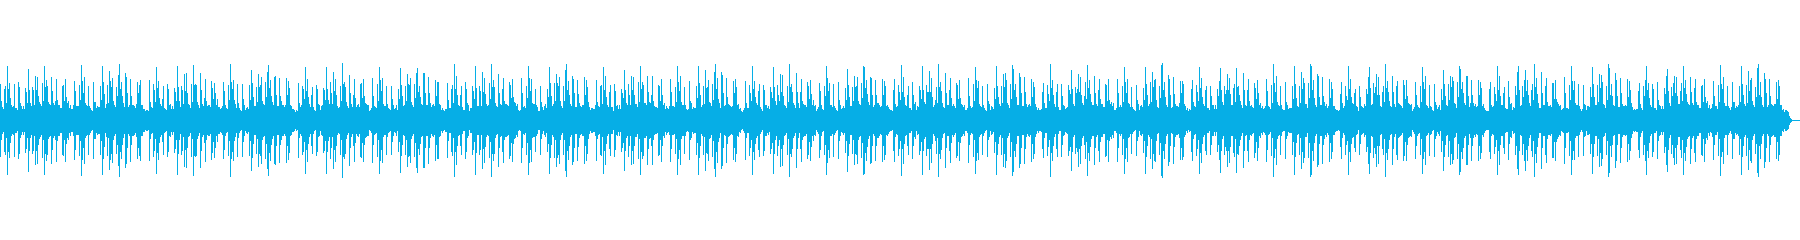 Japanese-style calm BGM such as product advertisement videos's reproduced waveform